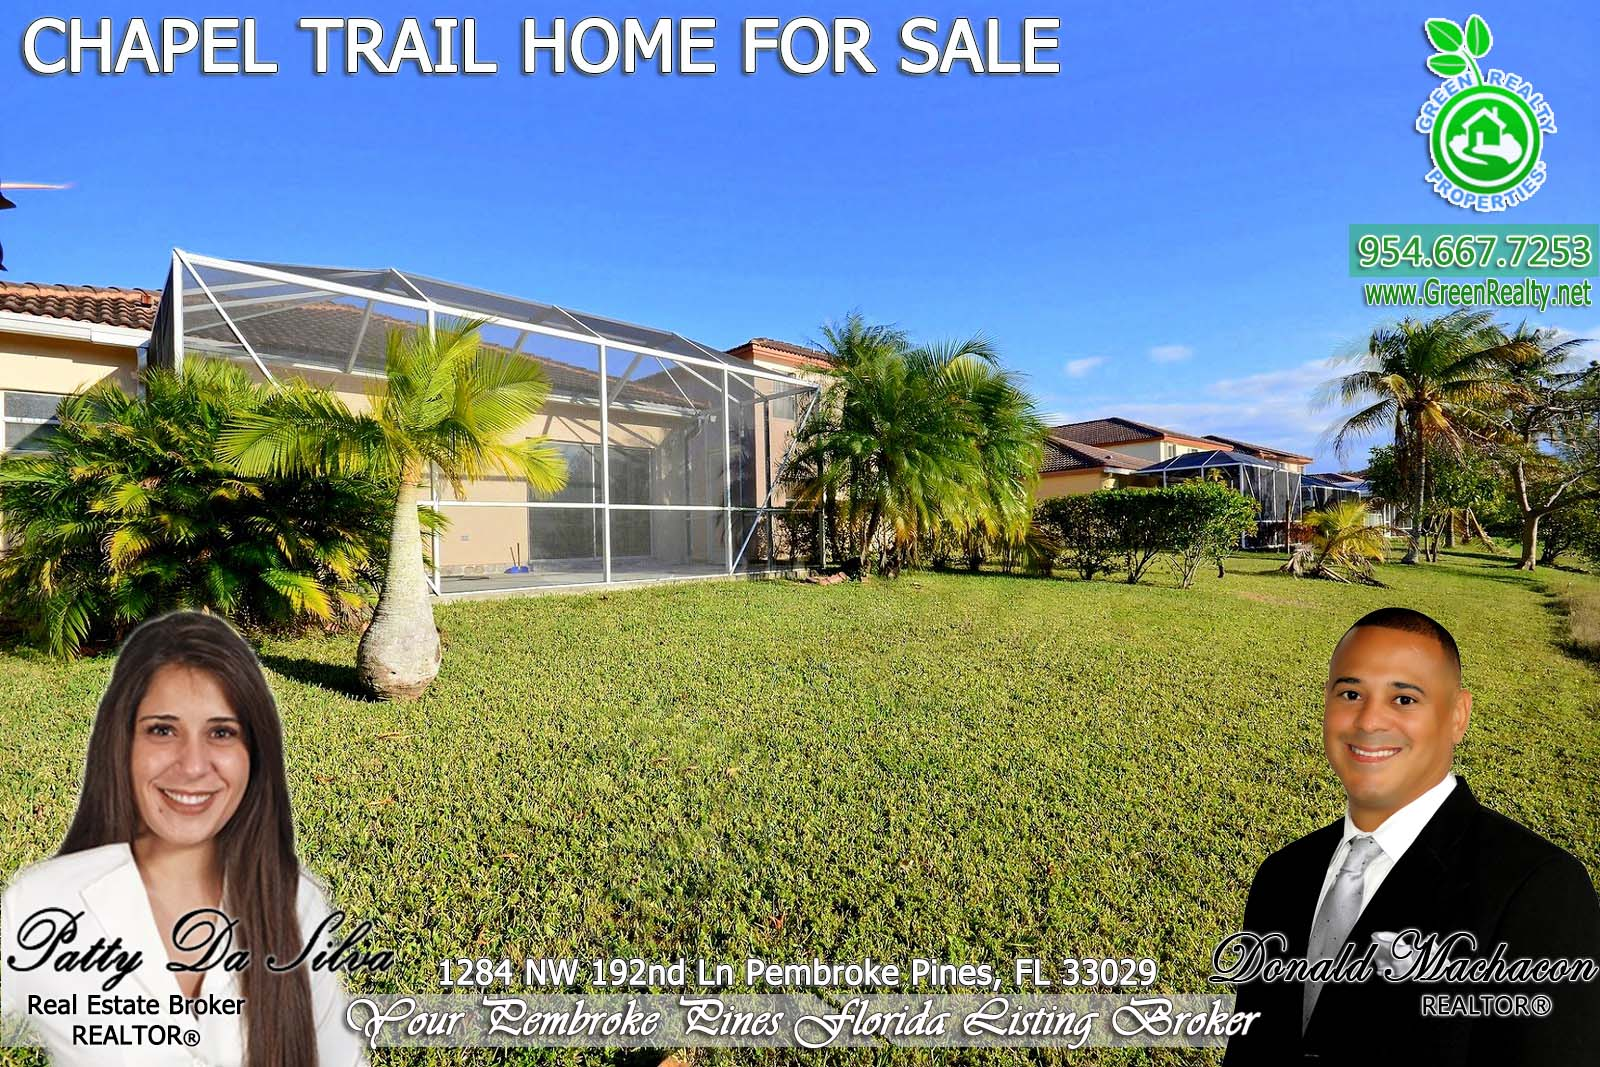 26 Homes For Sale in Pembroke Pines (11)